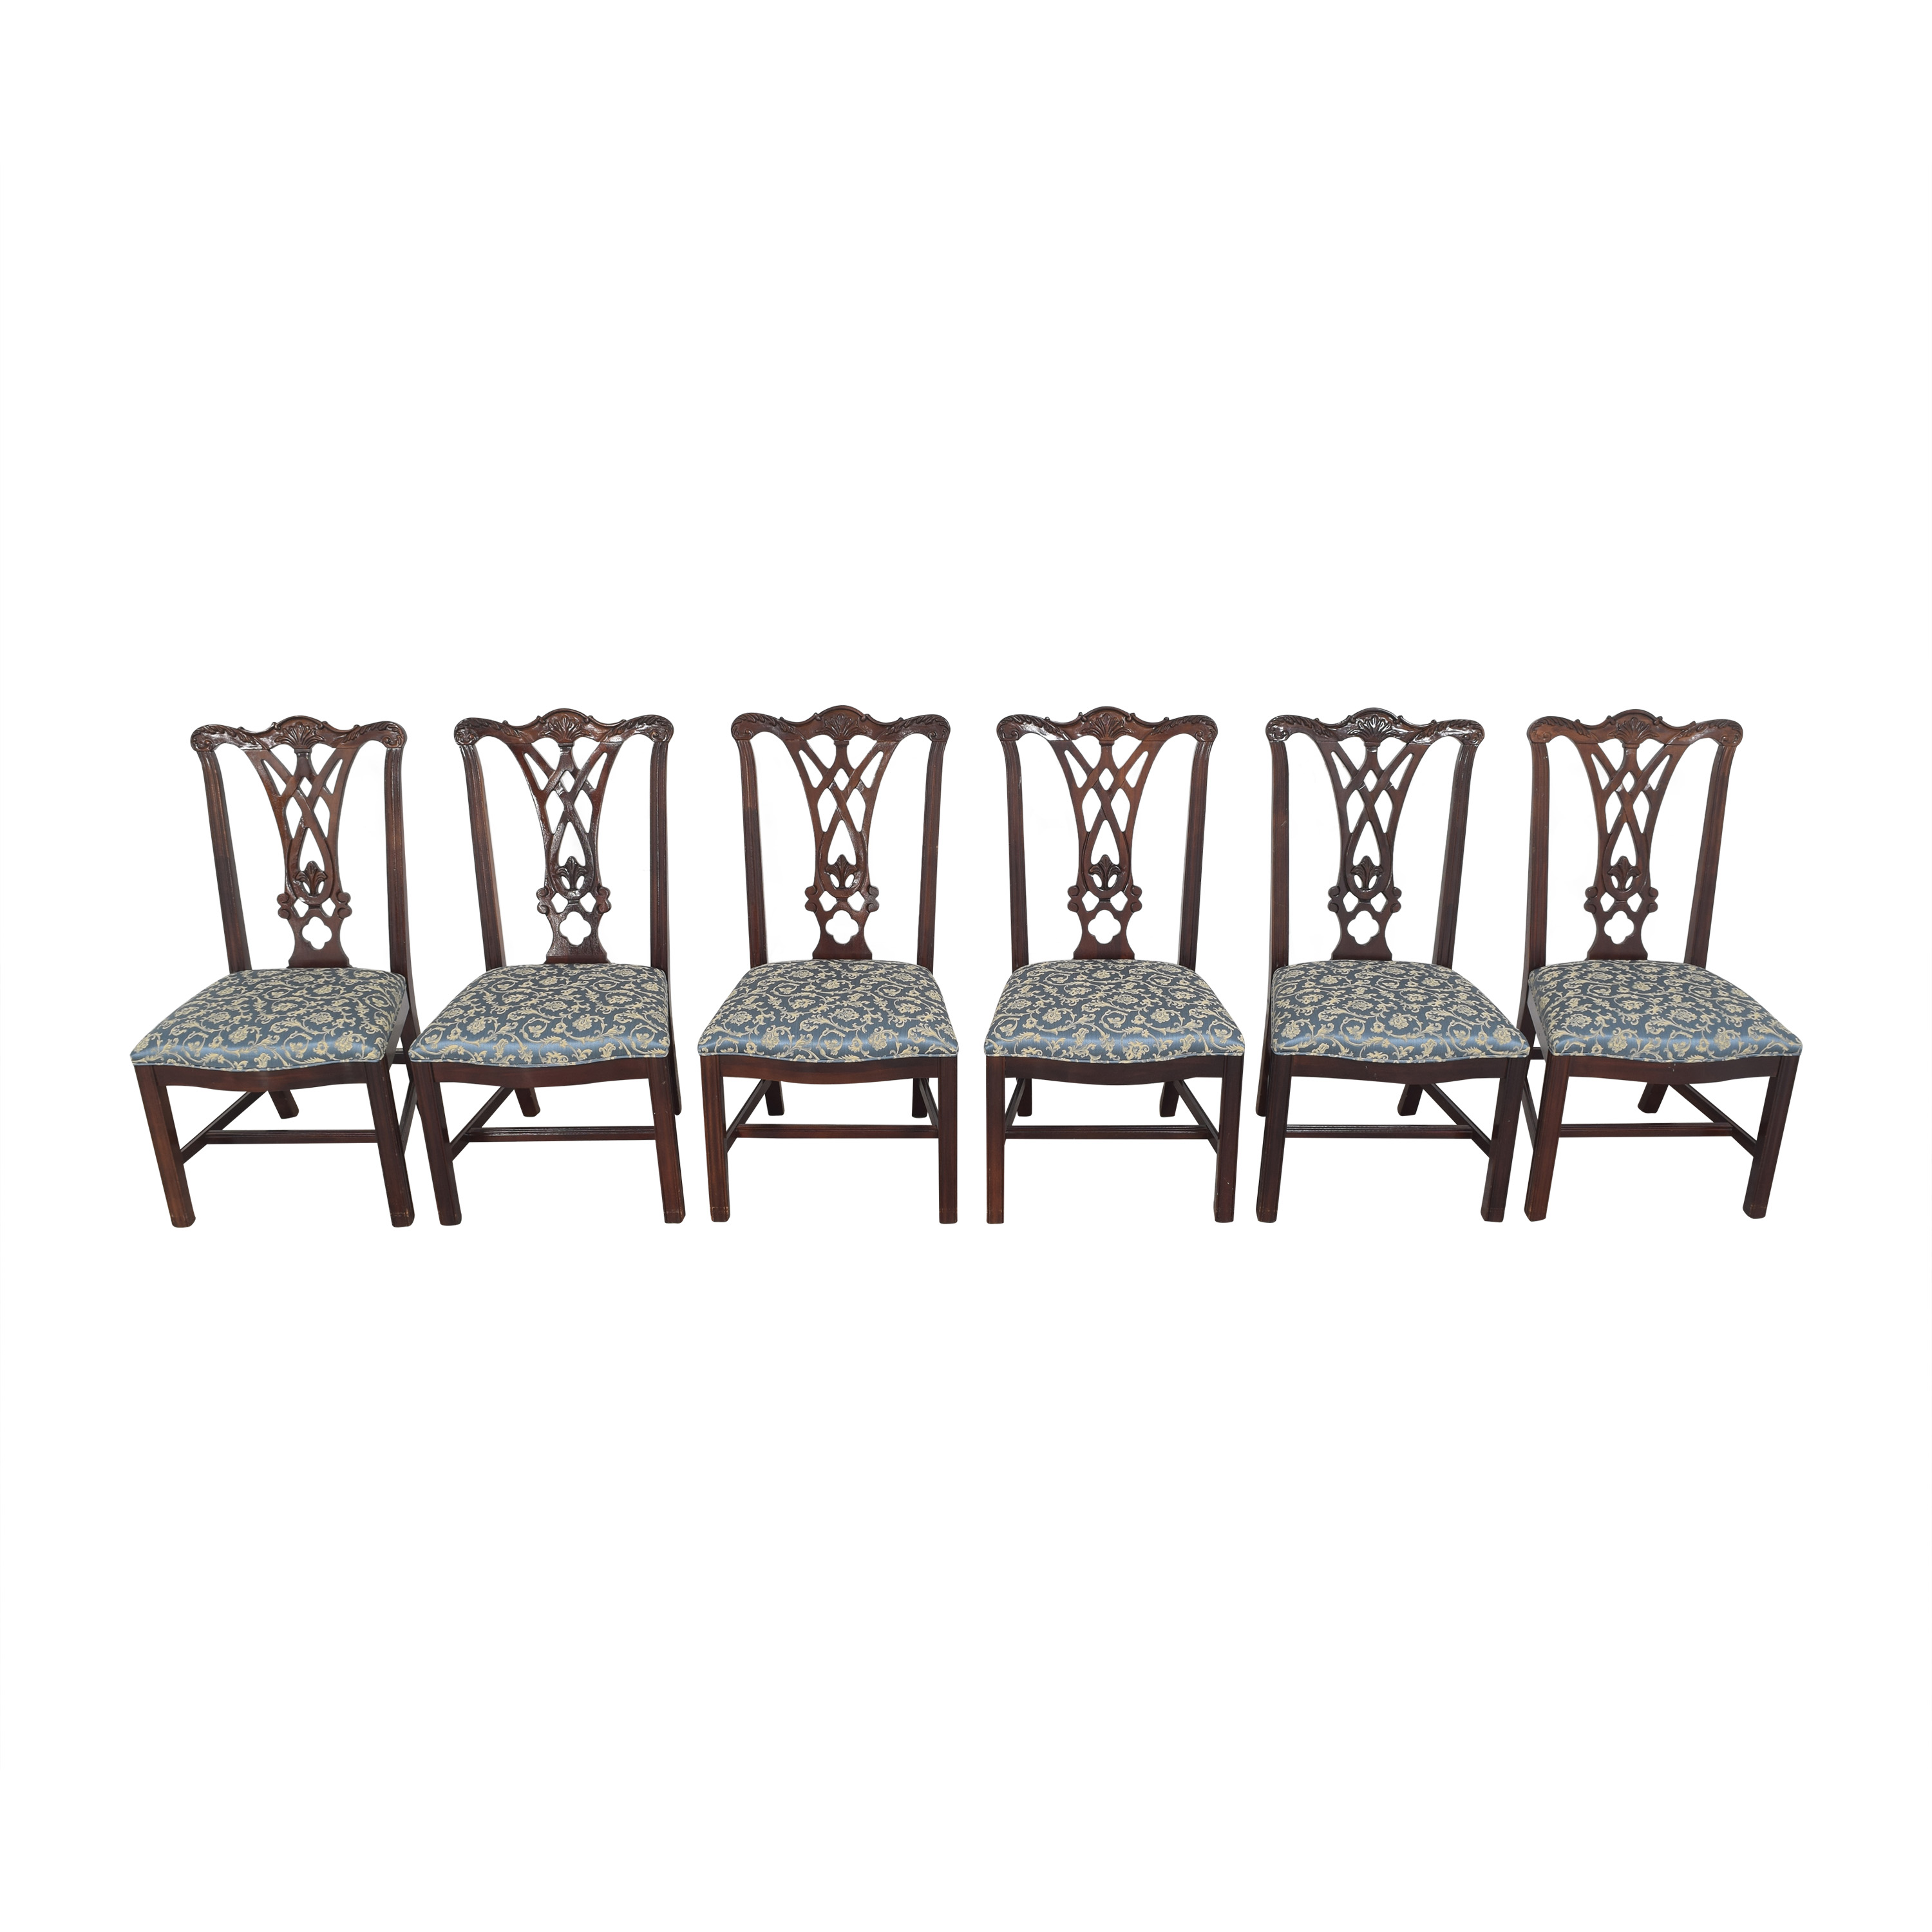 Thomasville Thomasville Chippendale Style Dining Chairs coupon